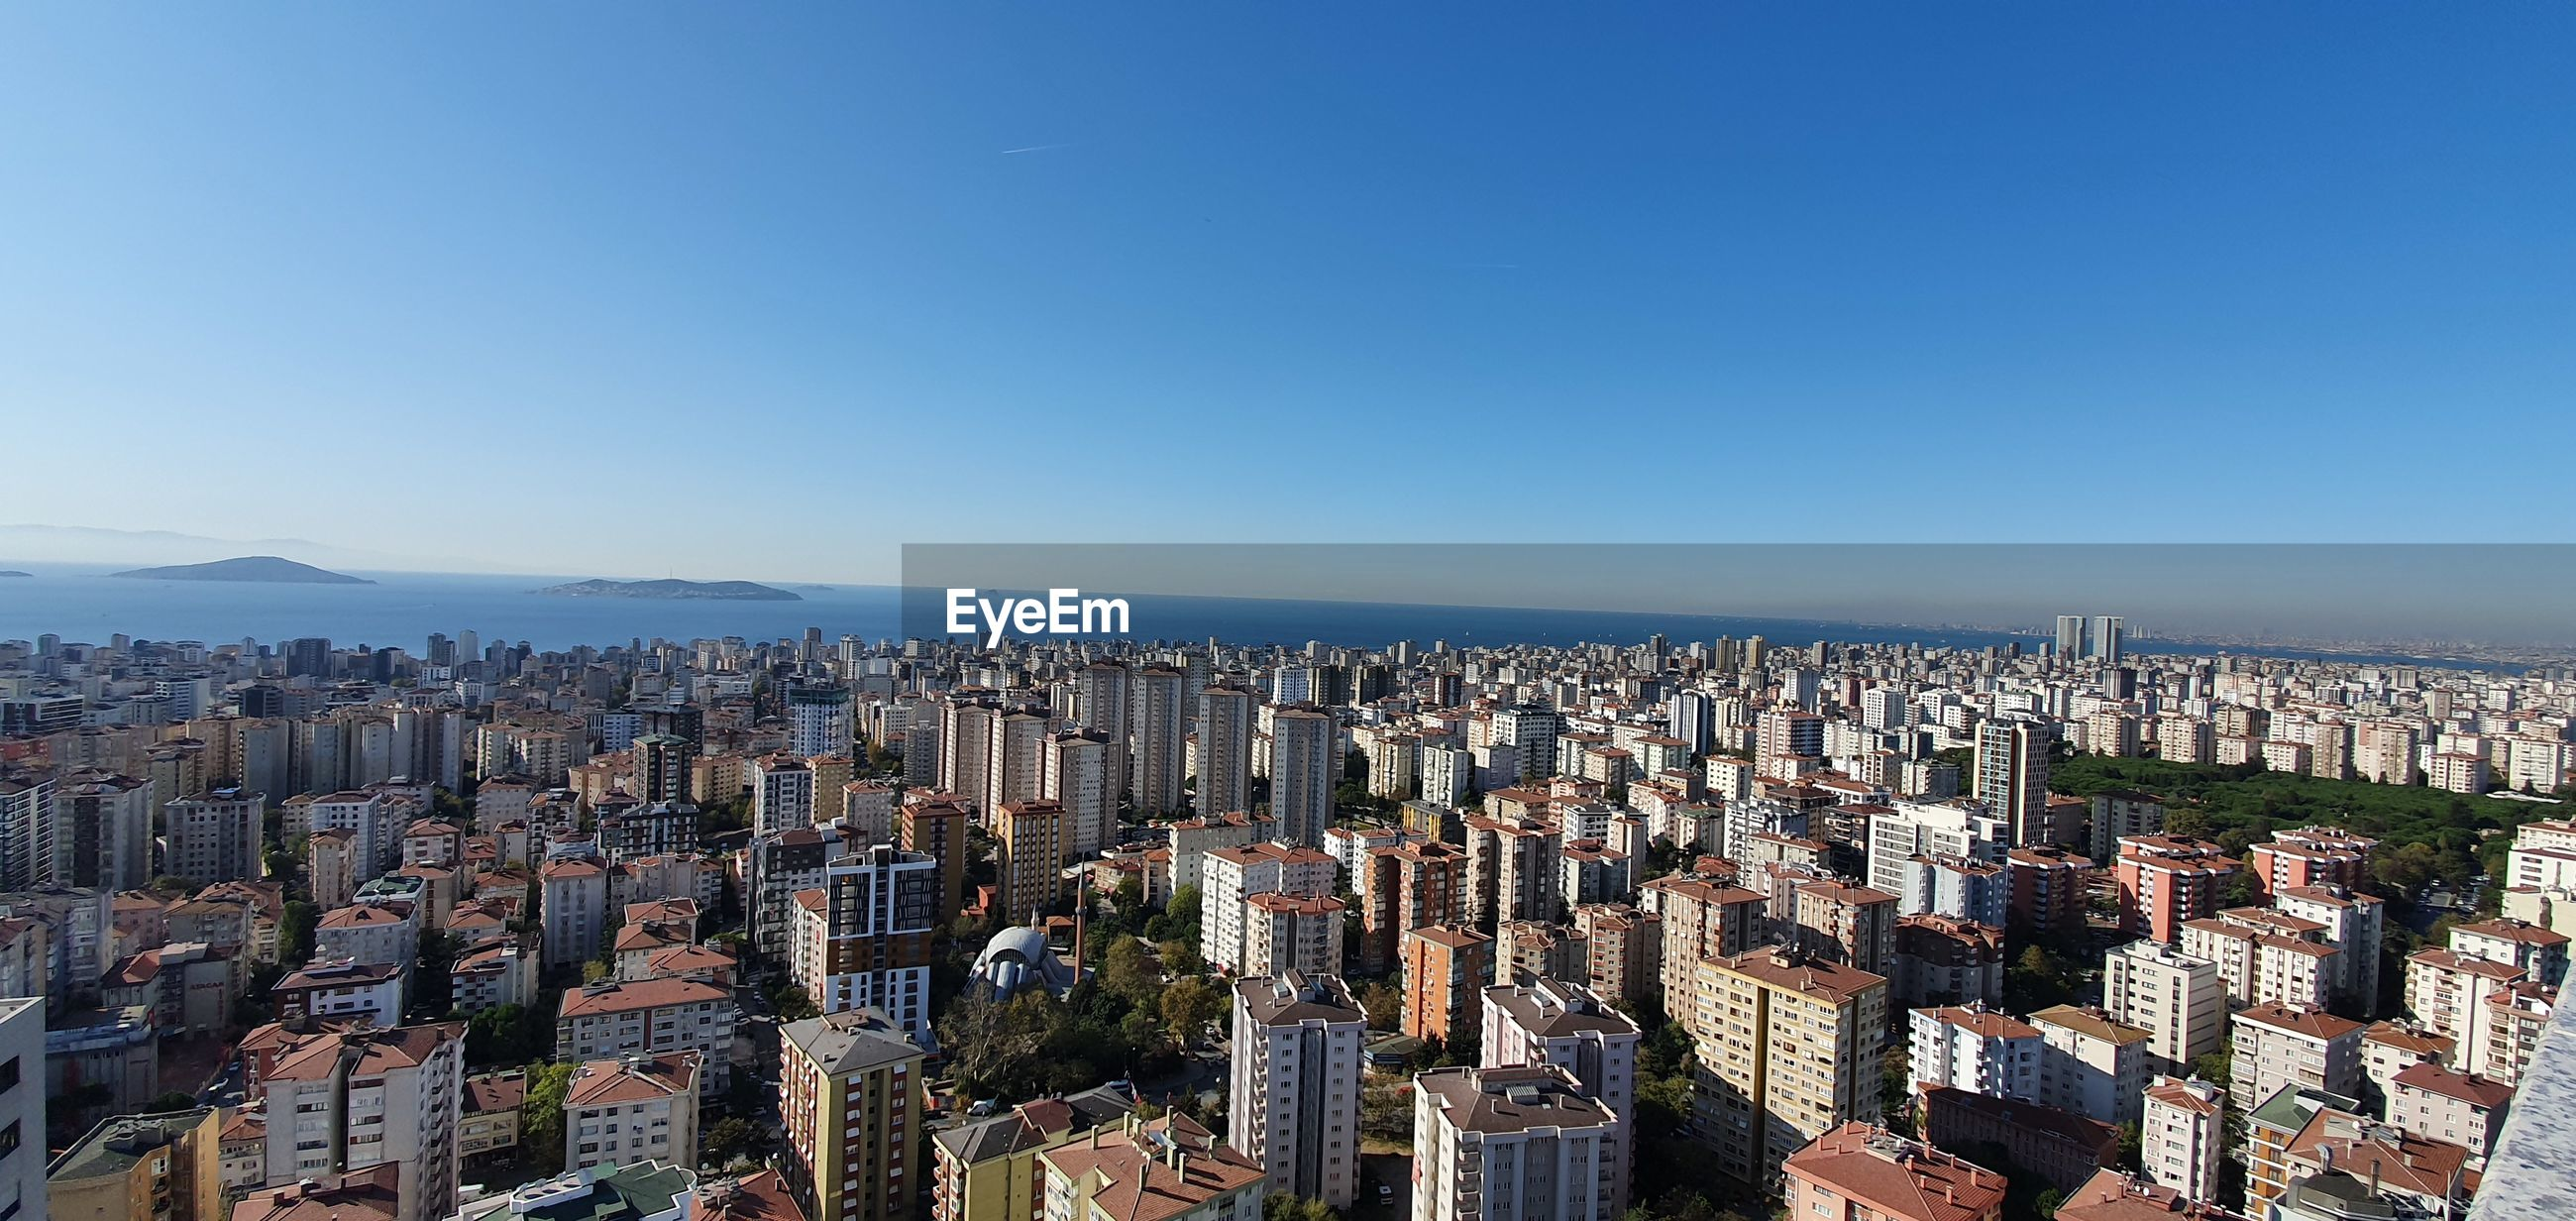 High angle view of city buildings against clear blue sky